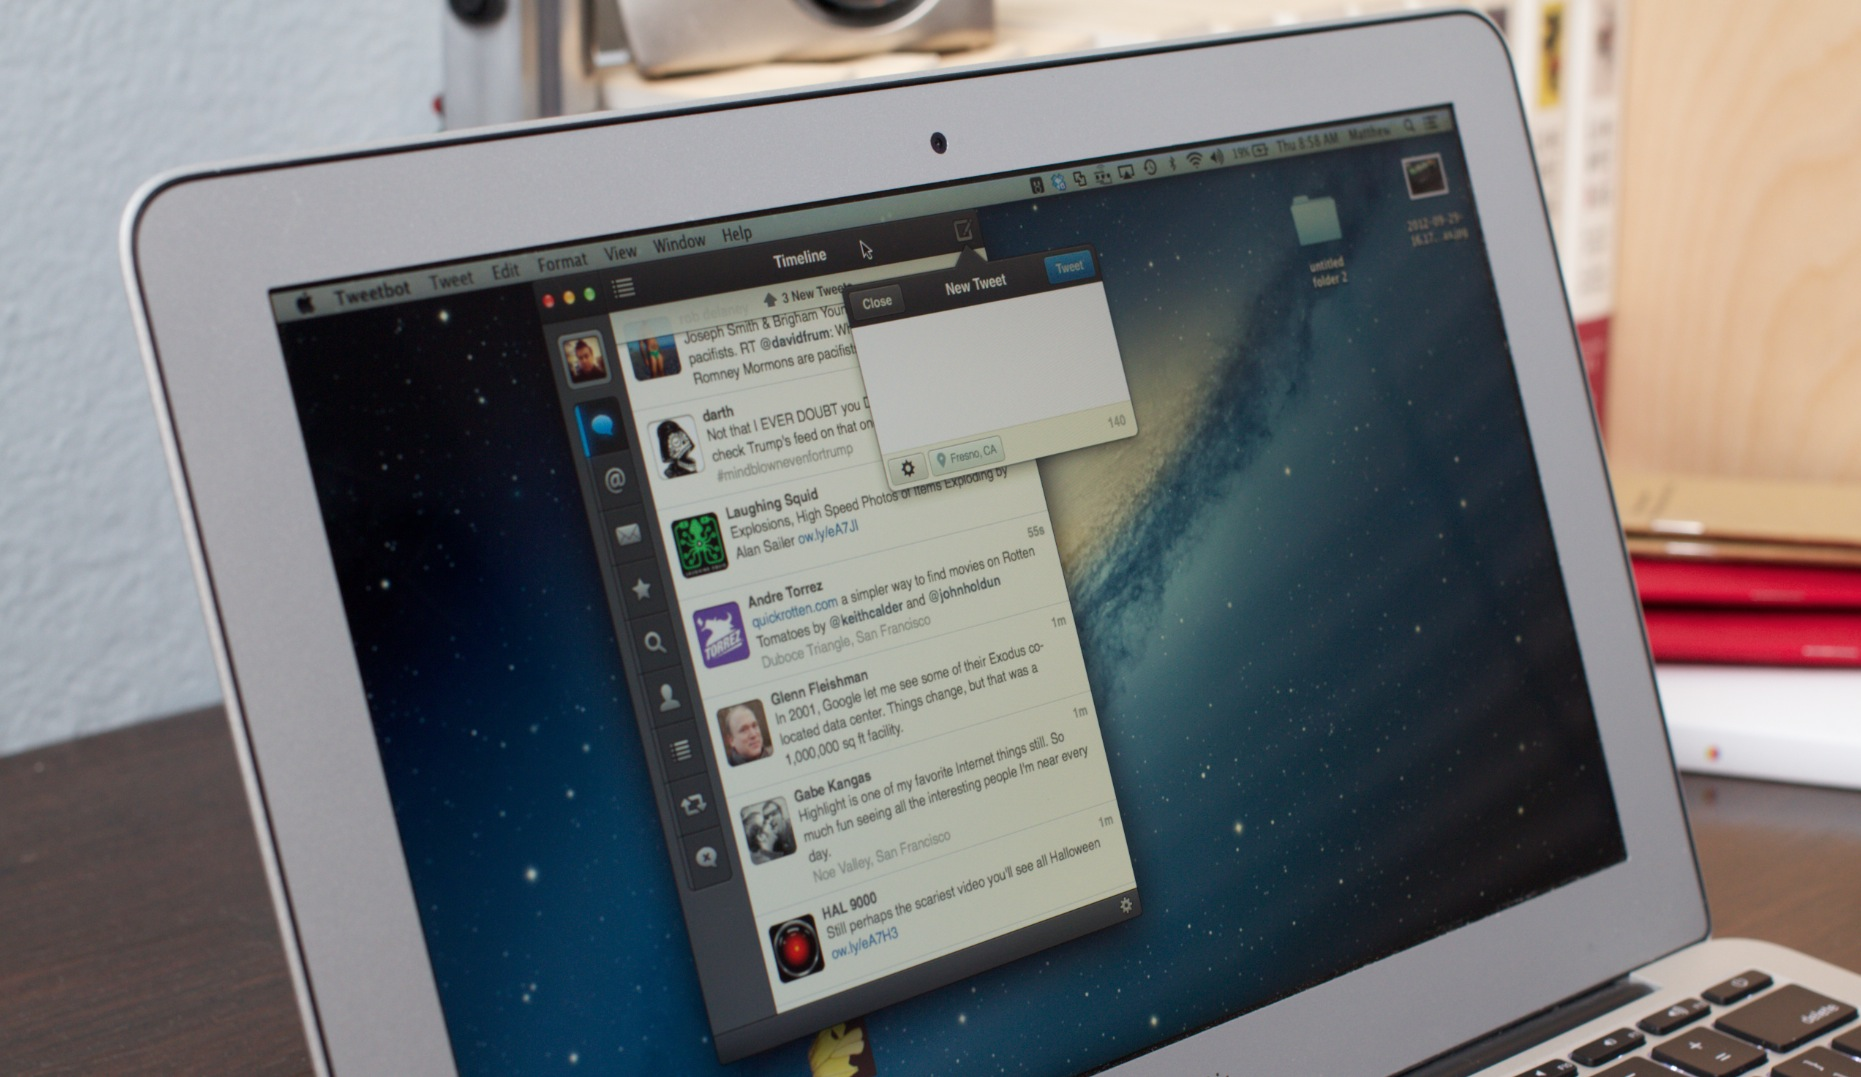 Tweetbot: Probably the last great Twitter client for the Mac